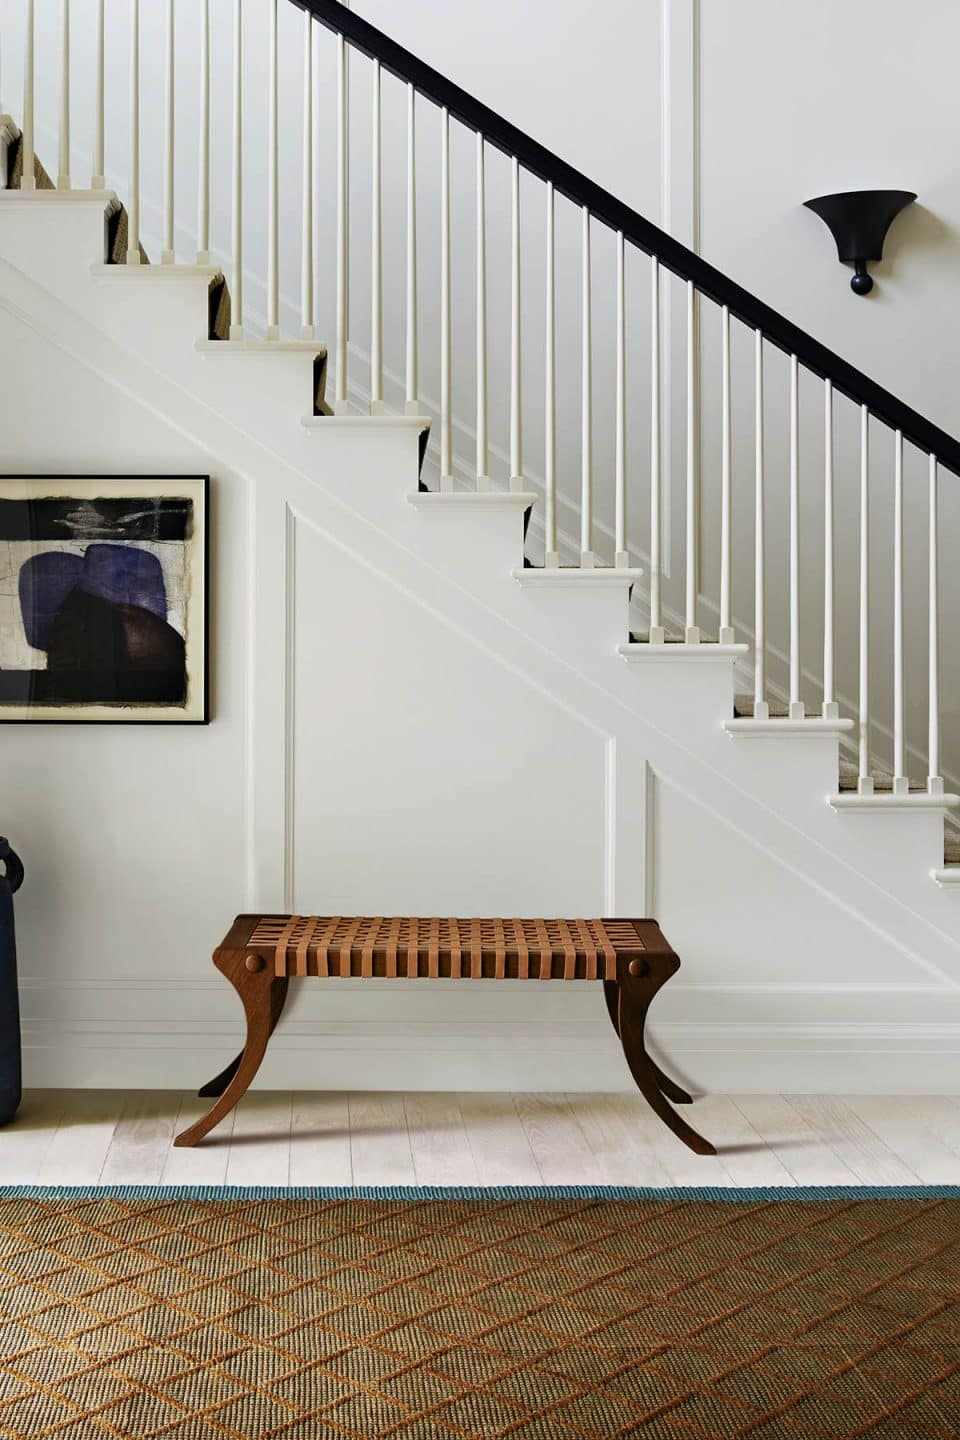 Celebrate Summer with a Tour of a Relaxed Yet Elegant Southampton Home